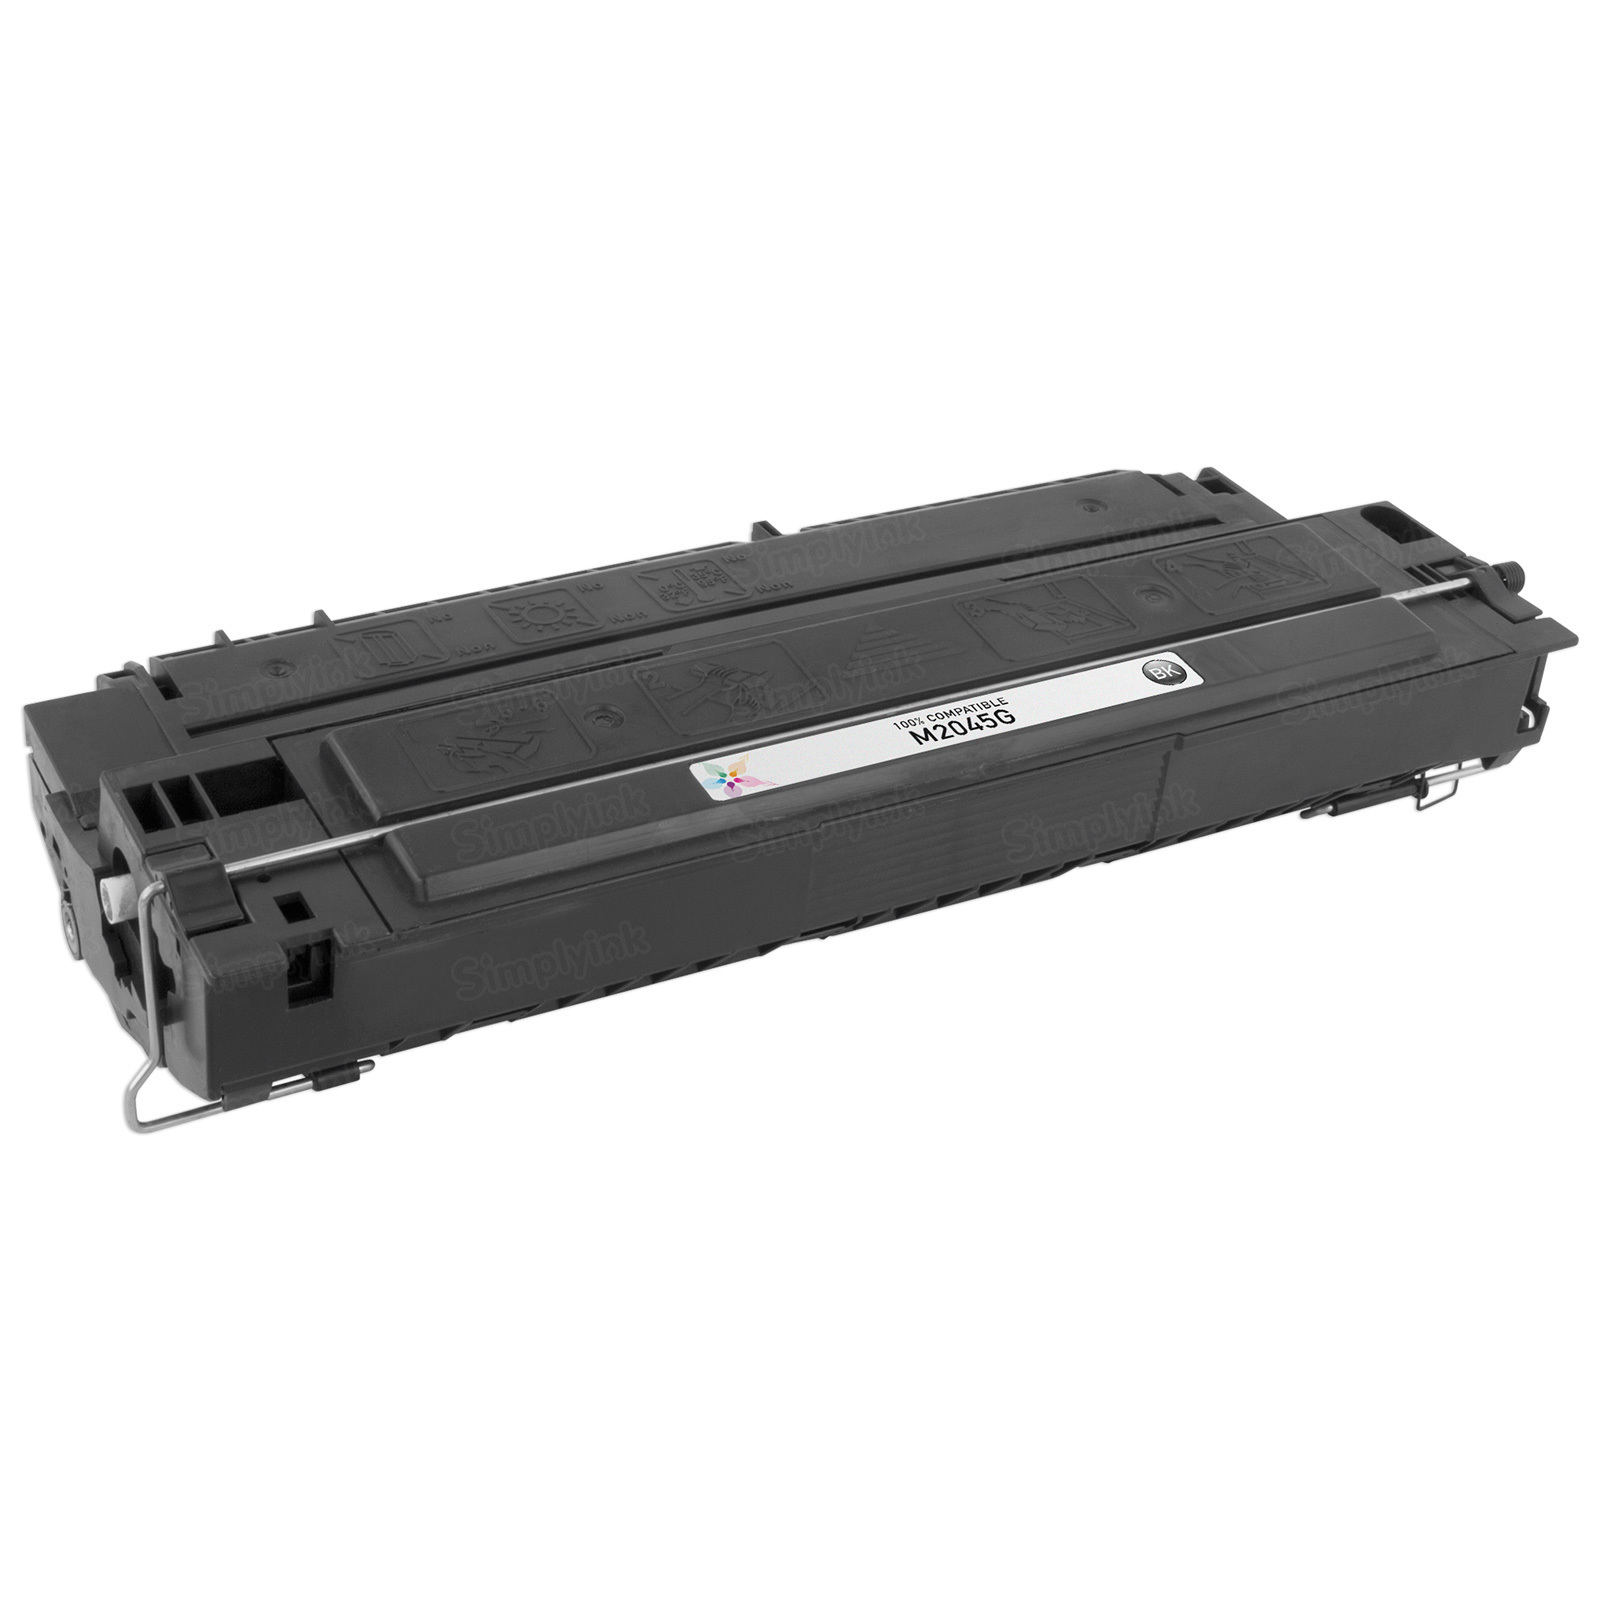 Remanufactured M2045A / M2045G Black Toner for the Apple LaserWriter 4